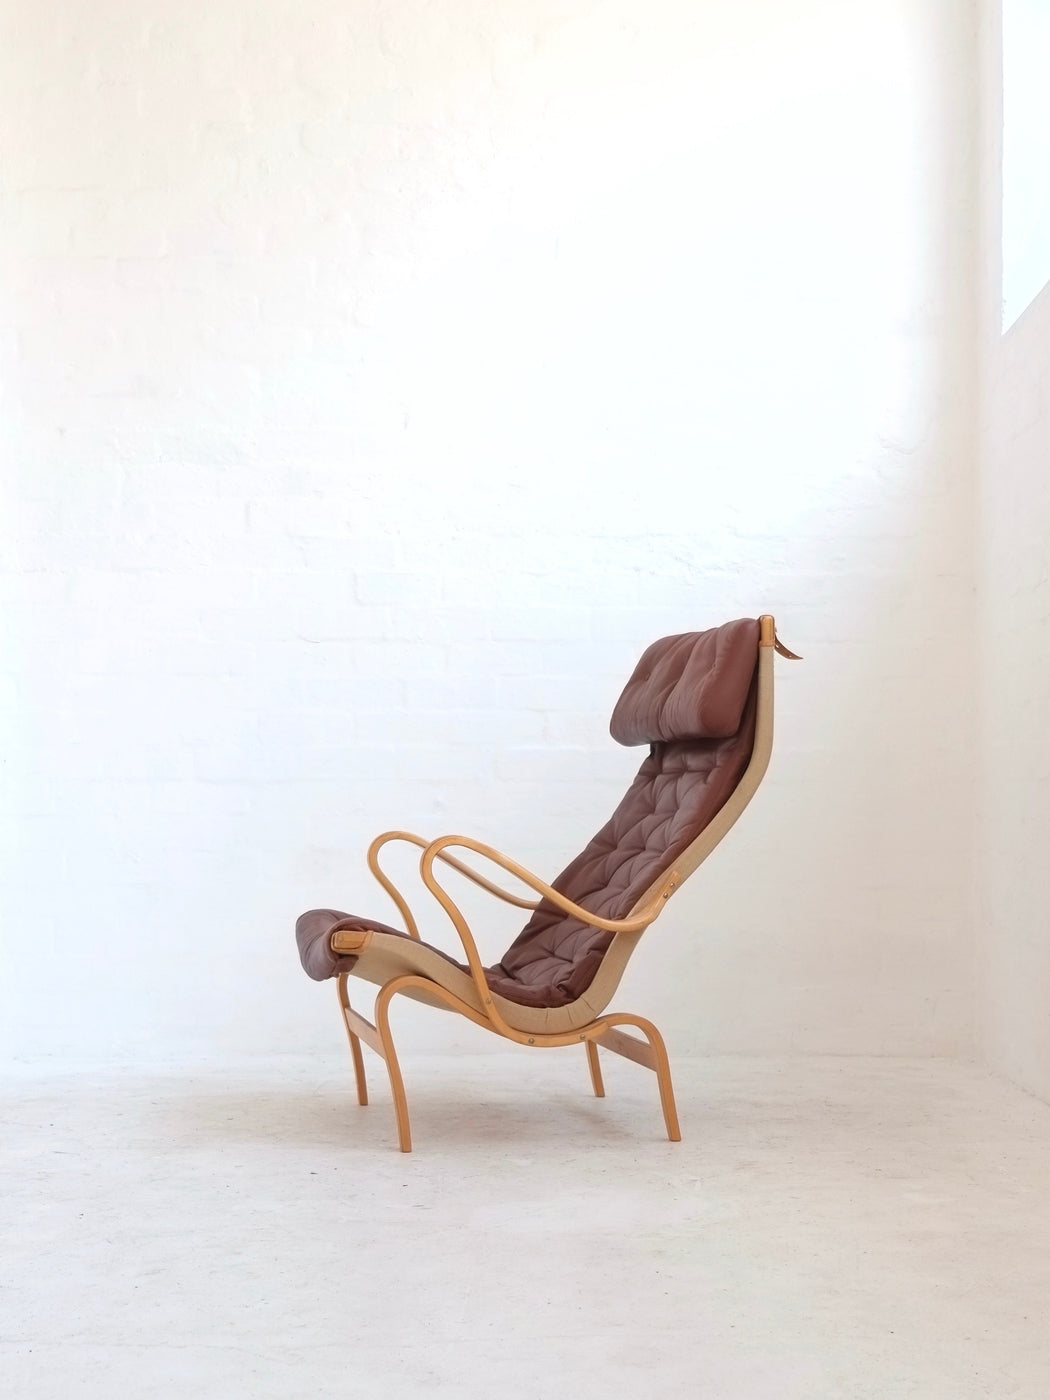 Bruno Mathsson 'Pernilla' Chair